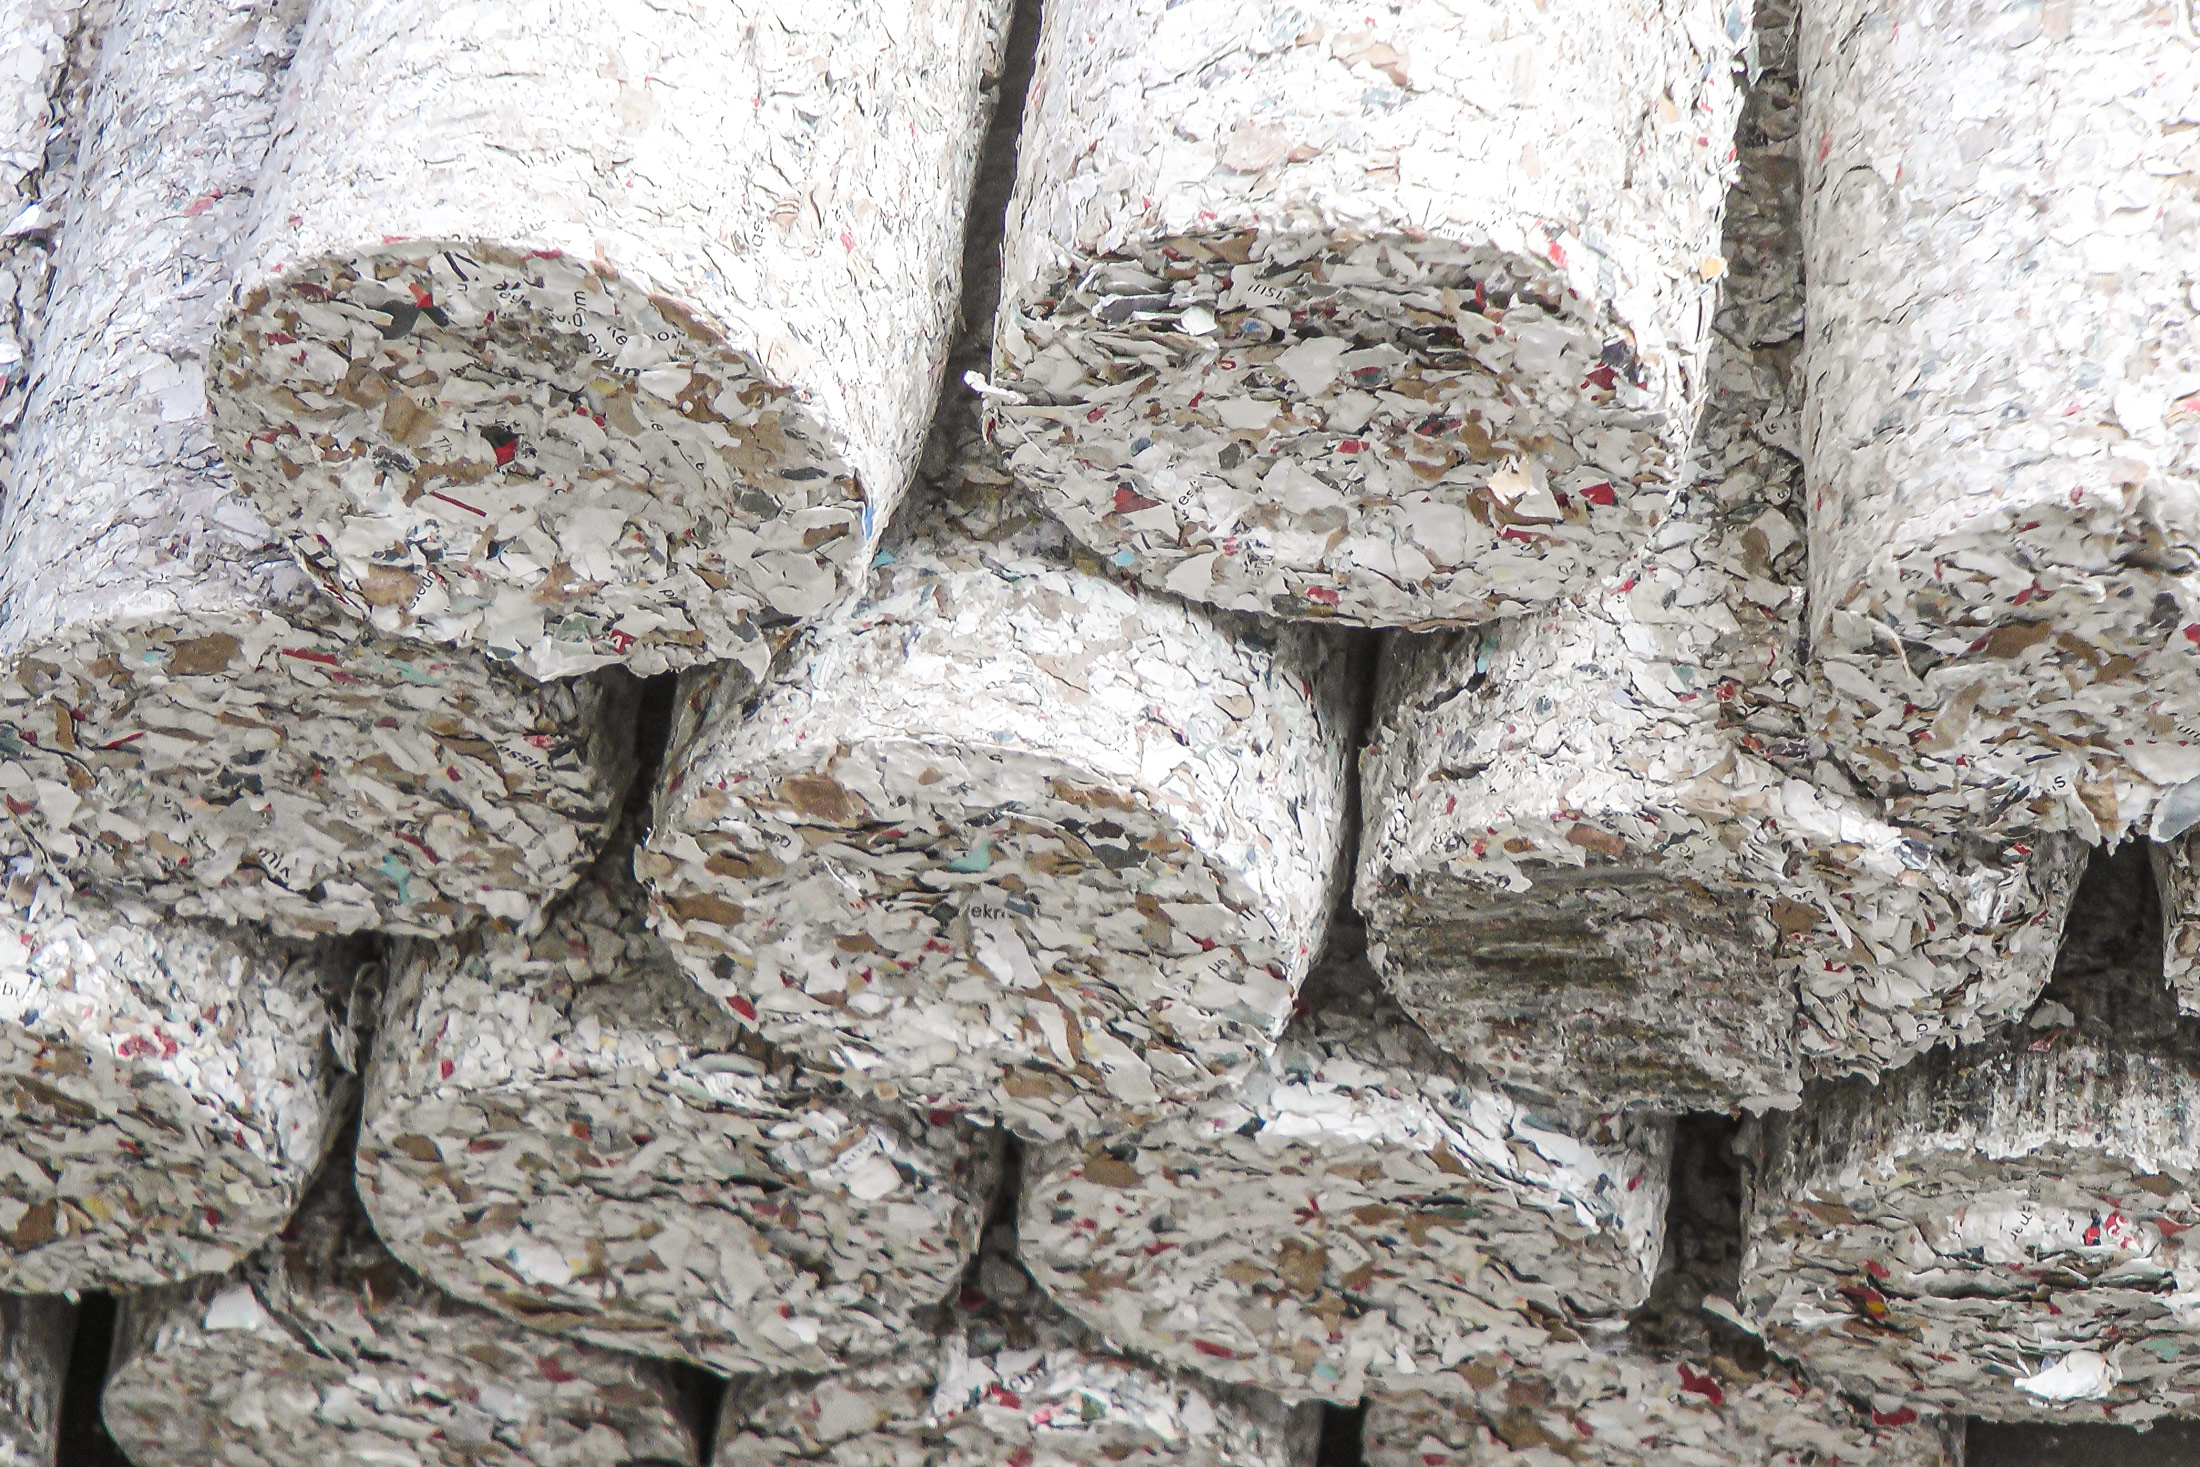 Briquettes from paper documents